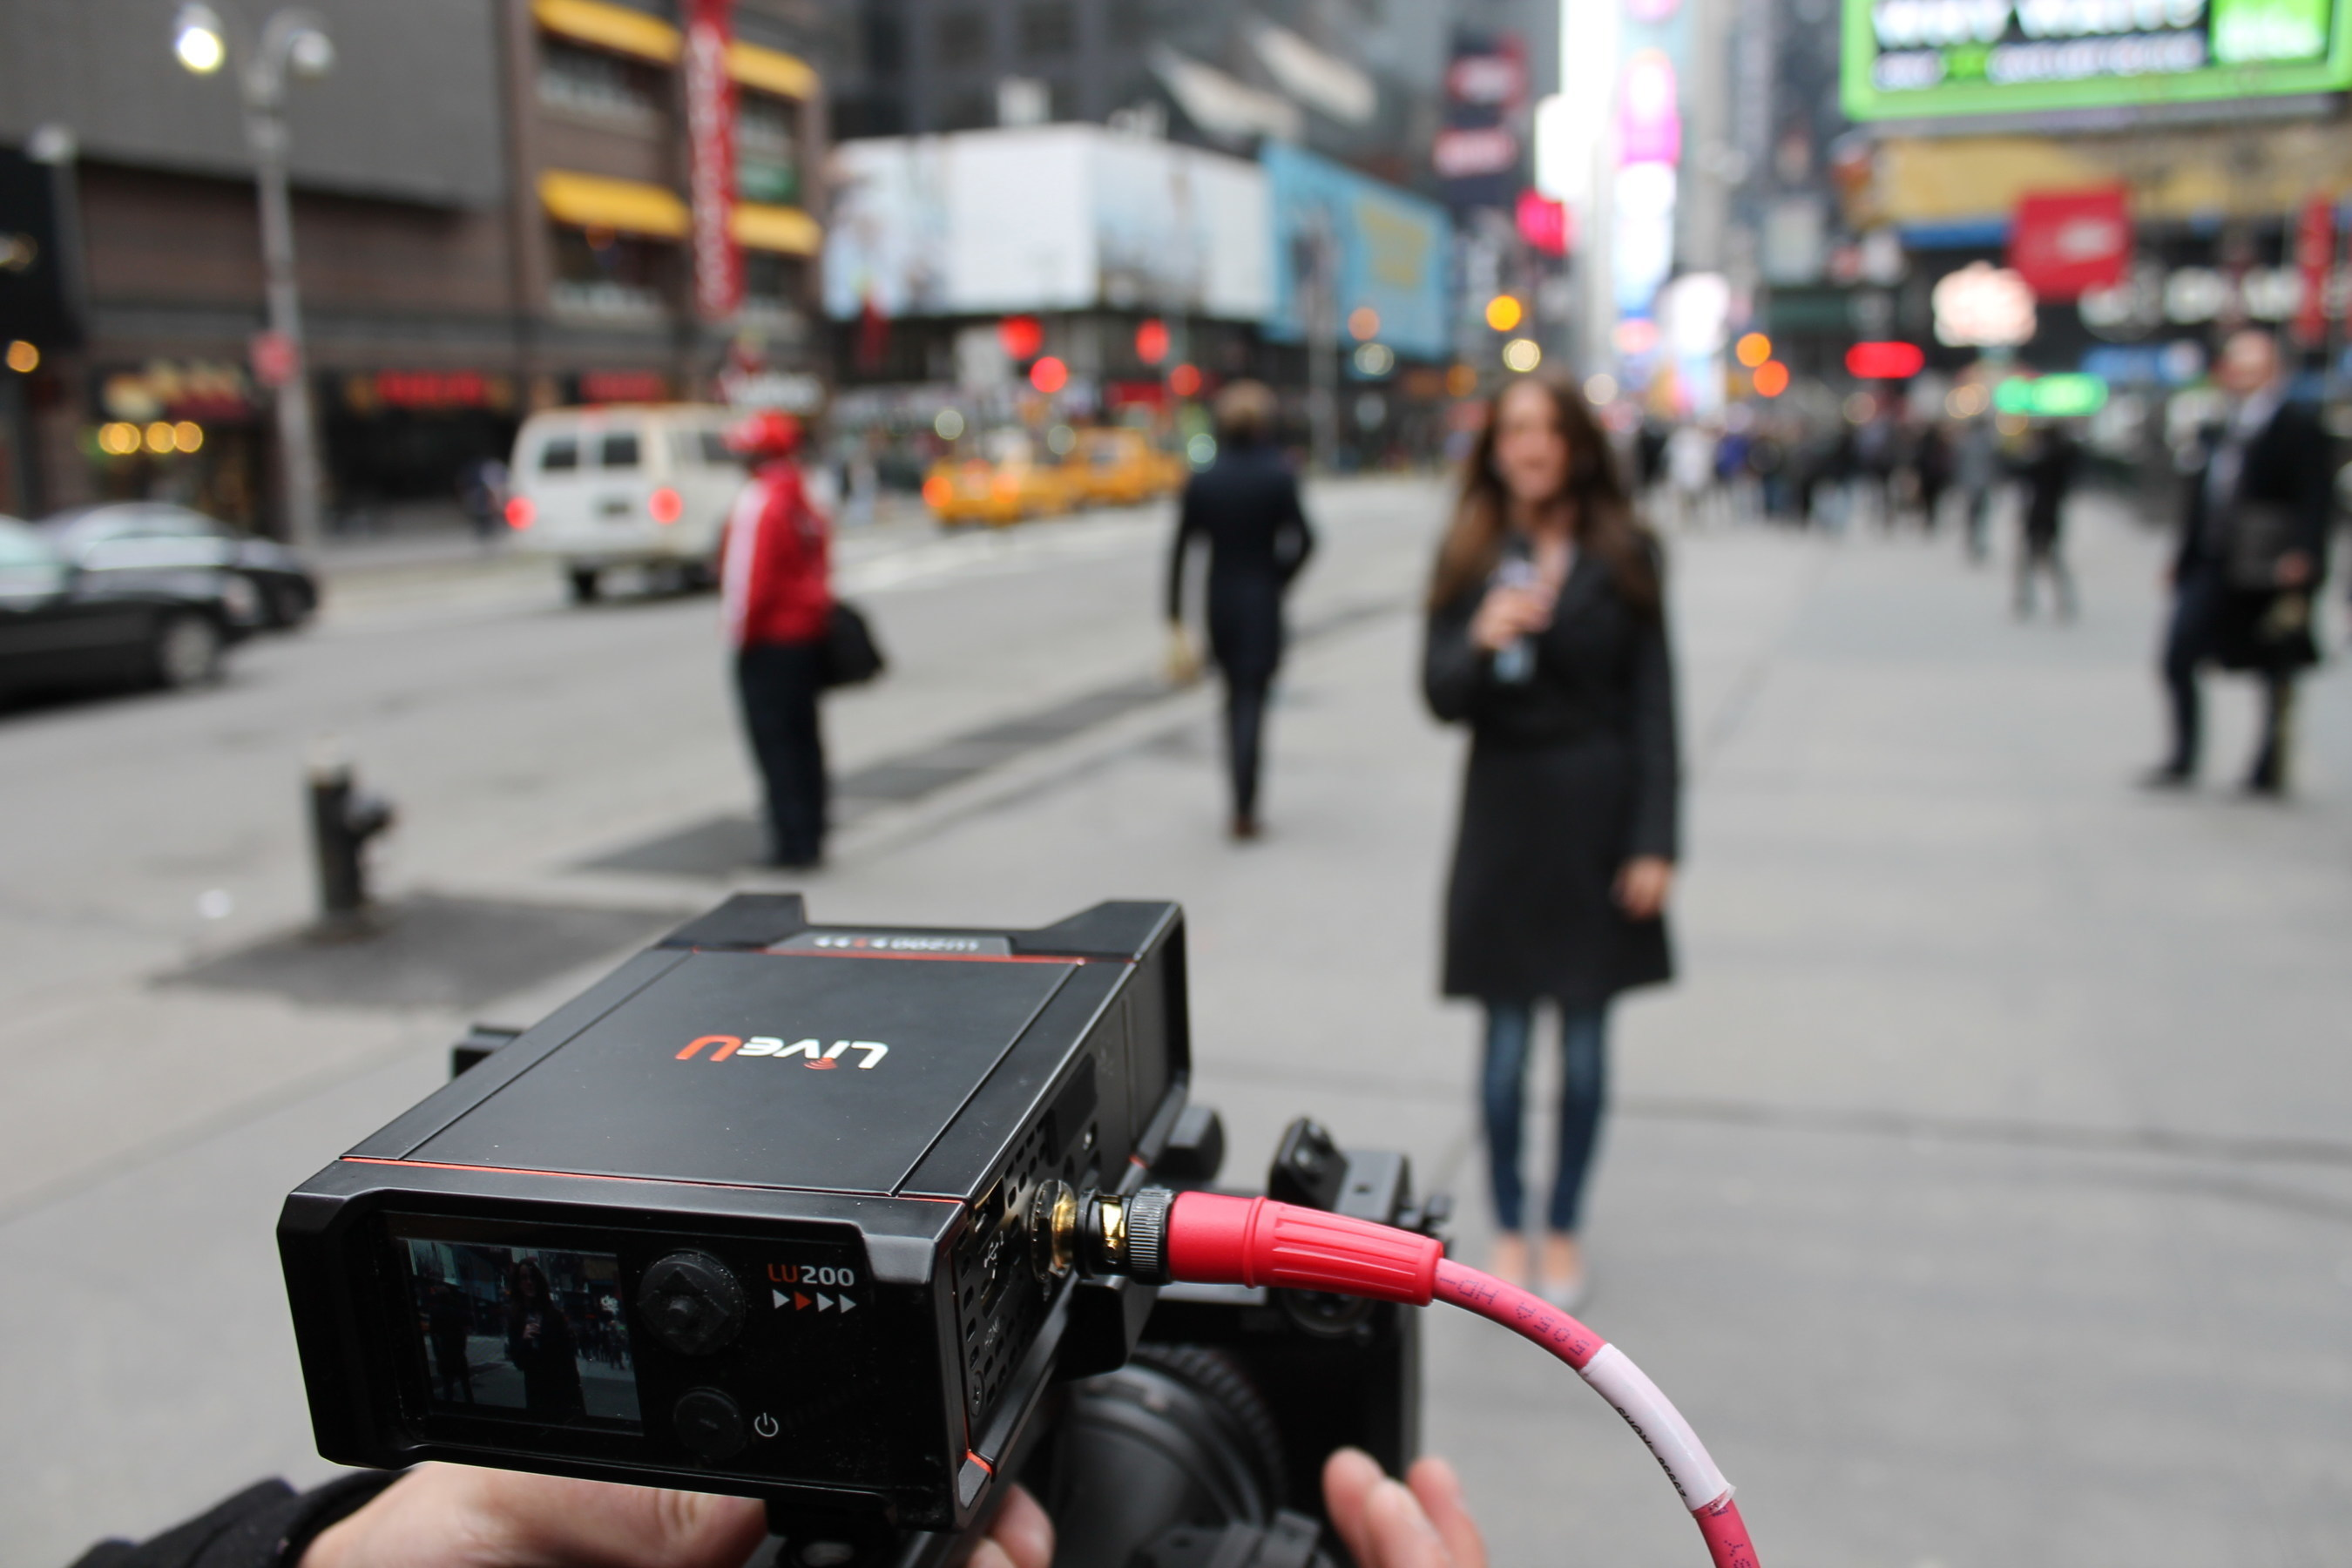 Weighing just 1lb, LiveU's LU200 allows every field camera to be equipped with a bonding uplink unit